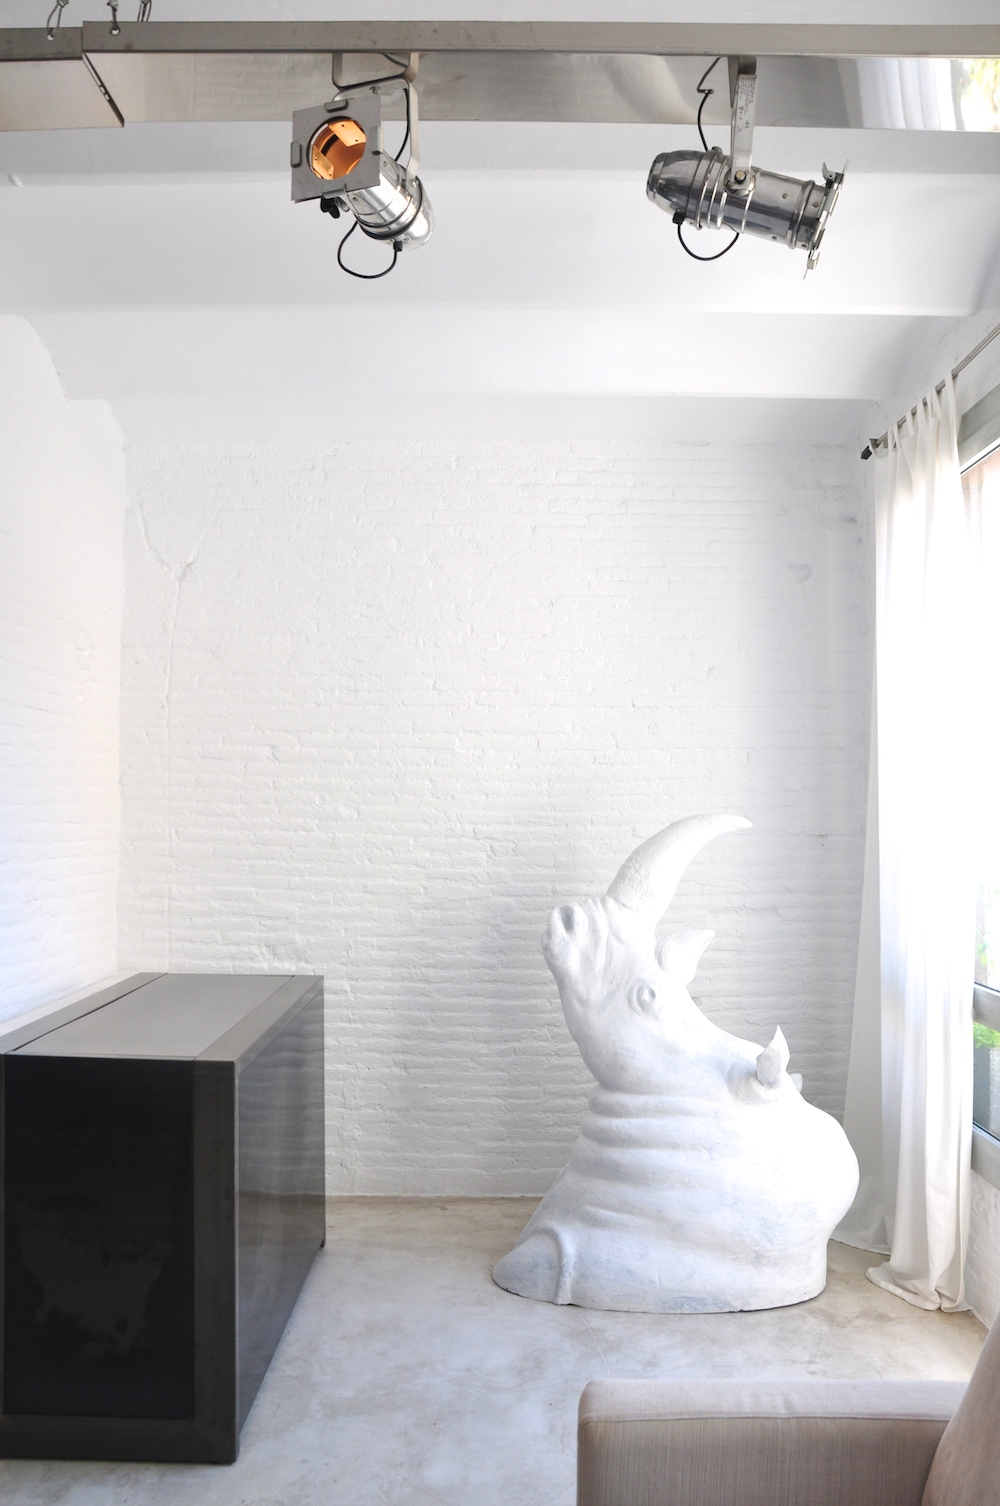 Barcelona_apartment_airbnb_rhino